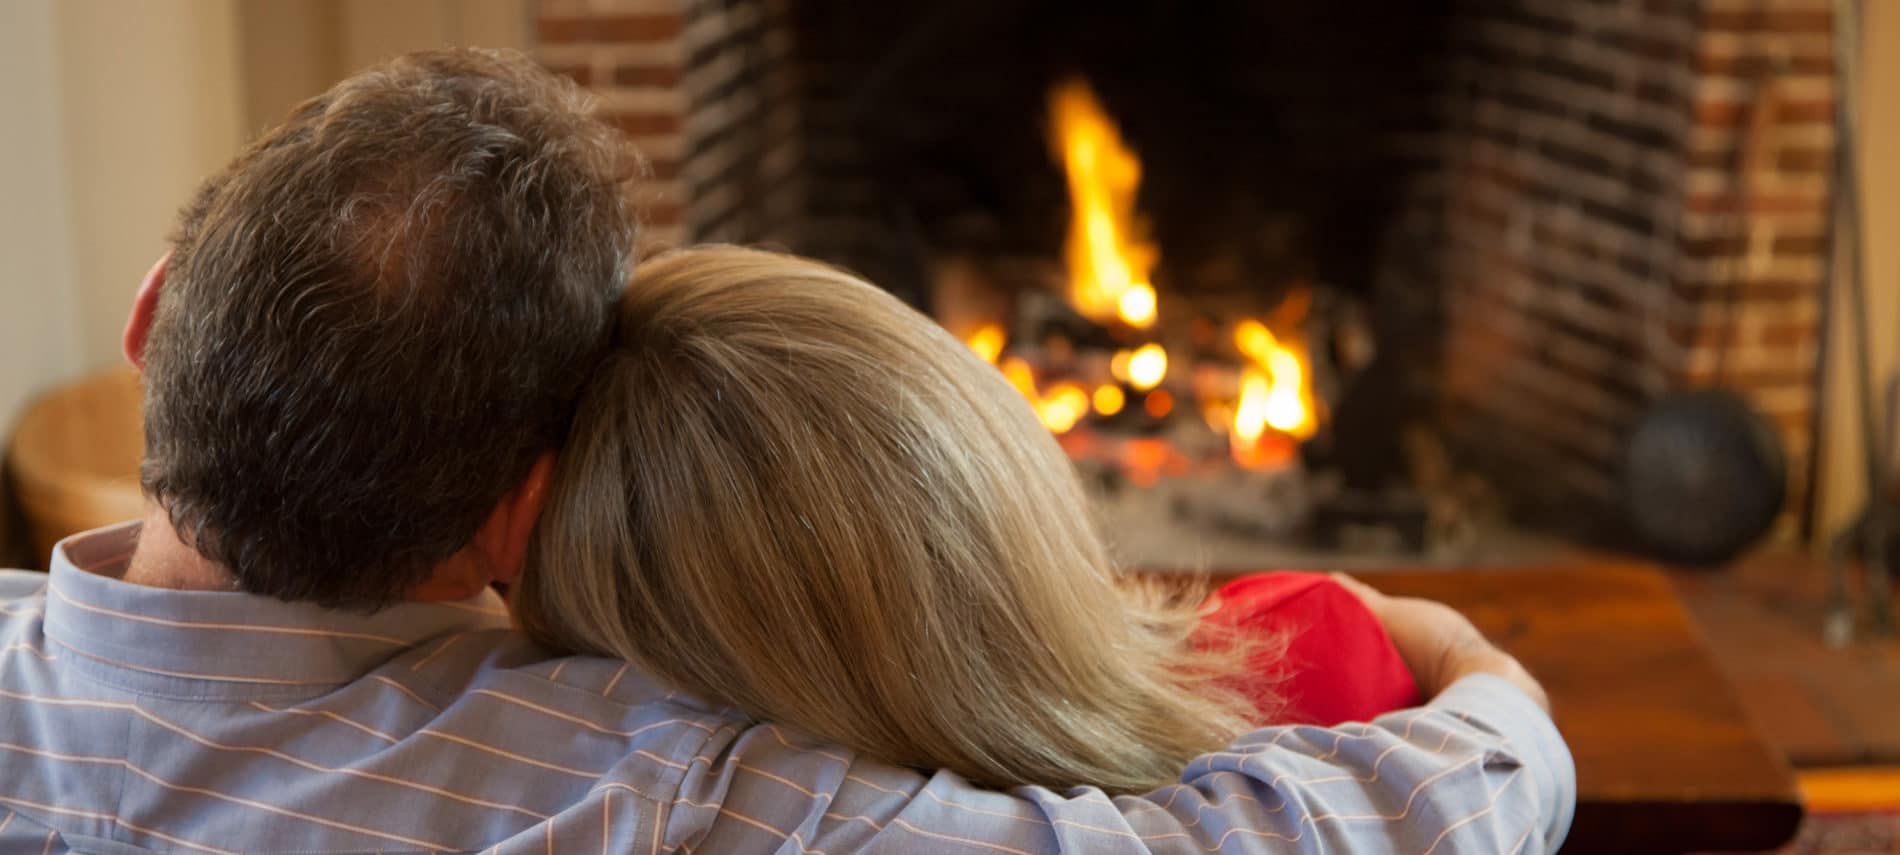 snuggling couple in front of a fireplace